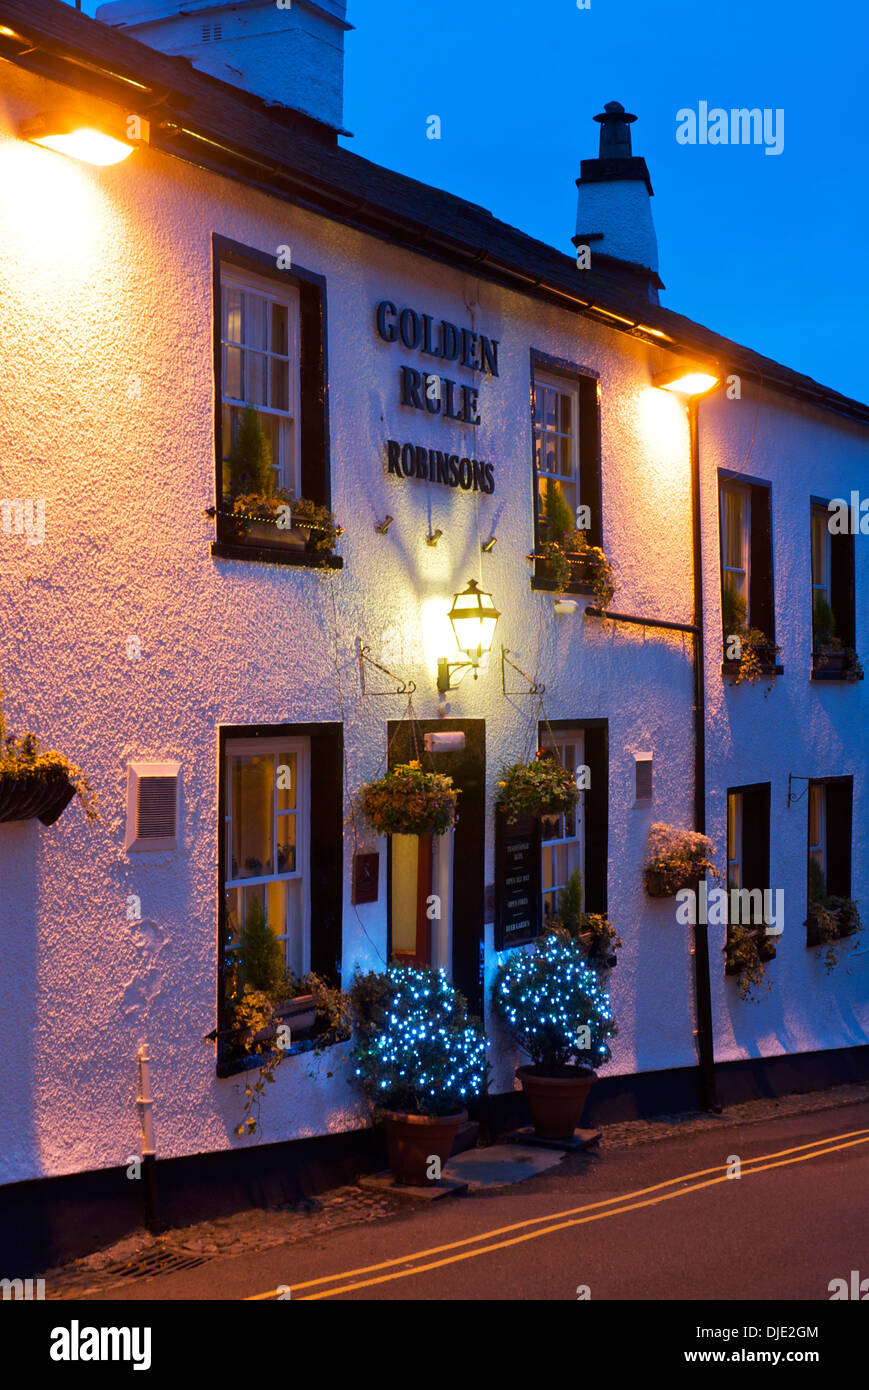 The Golden Rule pub, at dusk, Ambleside, Lake District National Park, Cumbria, England UK - Stock Image